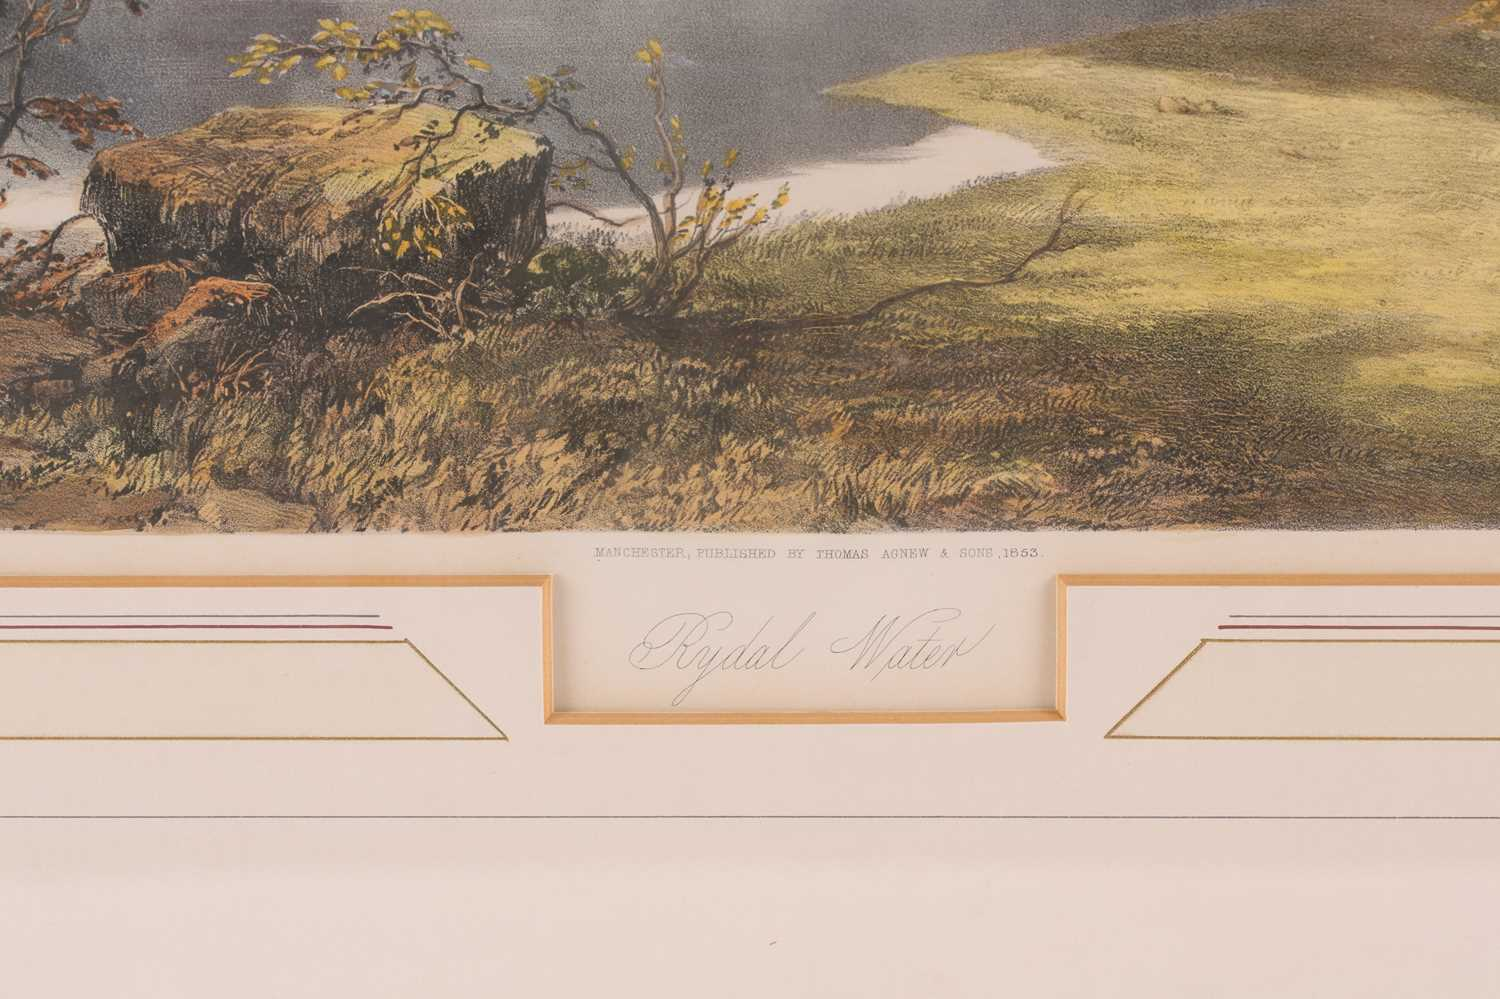 Gauci after J B Pyne, Skiddaw, Buttermere, The Vales of Emmerdale and Buttermere, The Rydal Water, - Image 7 of 13